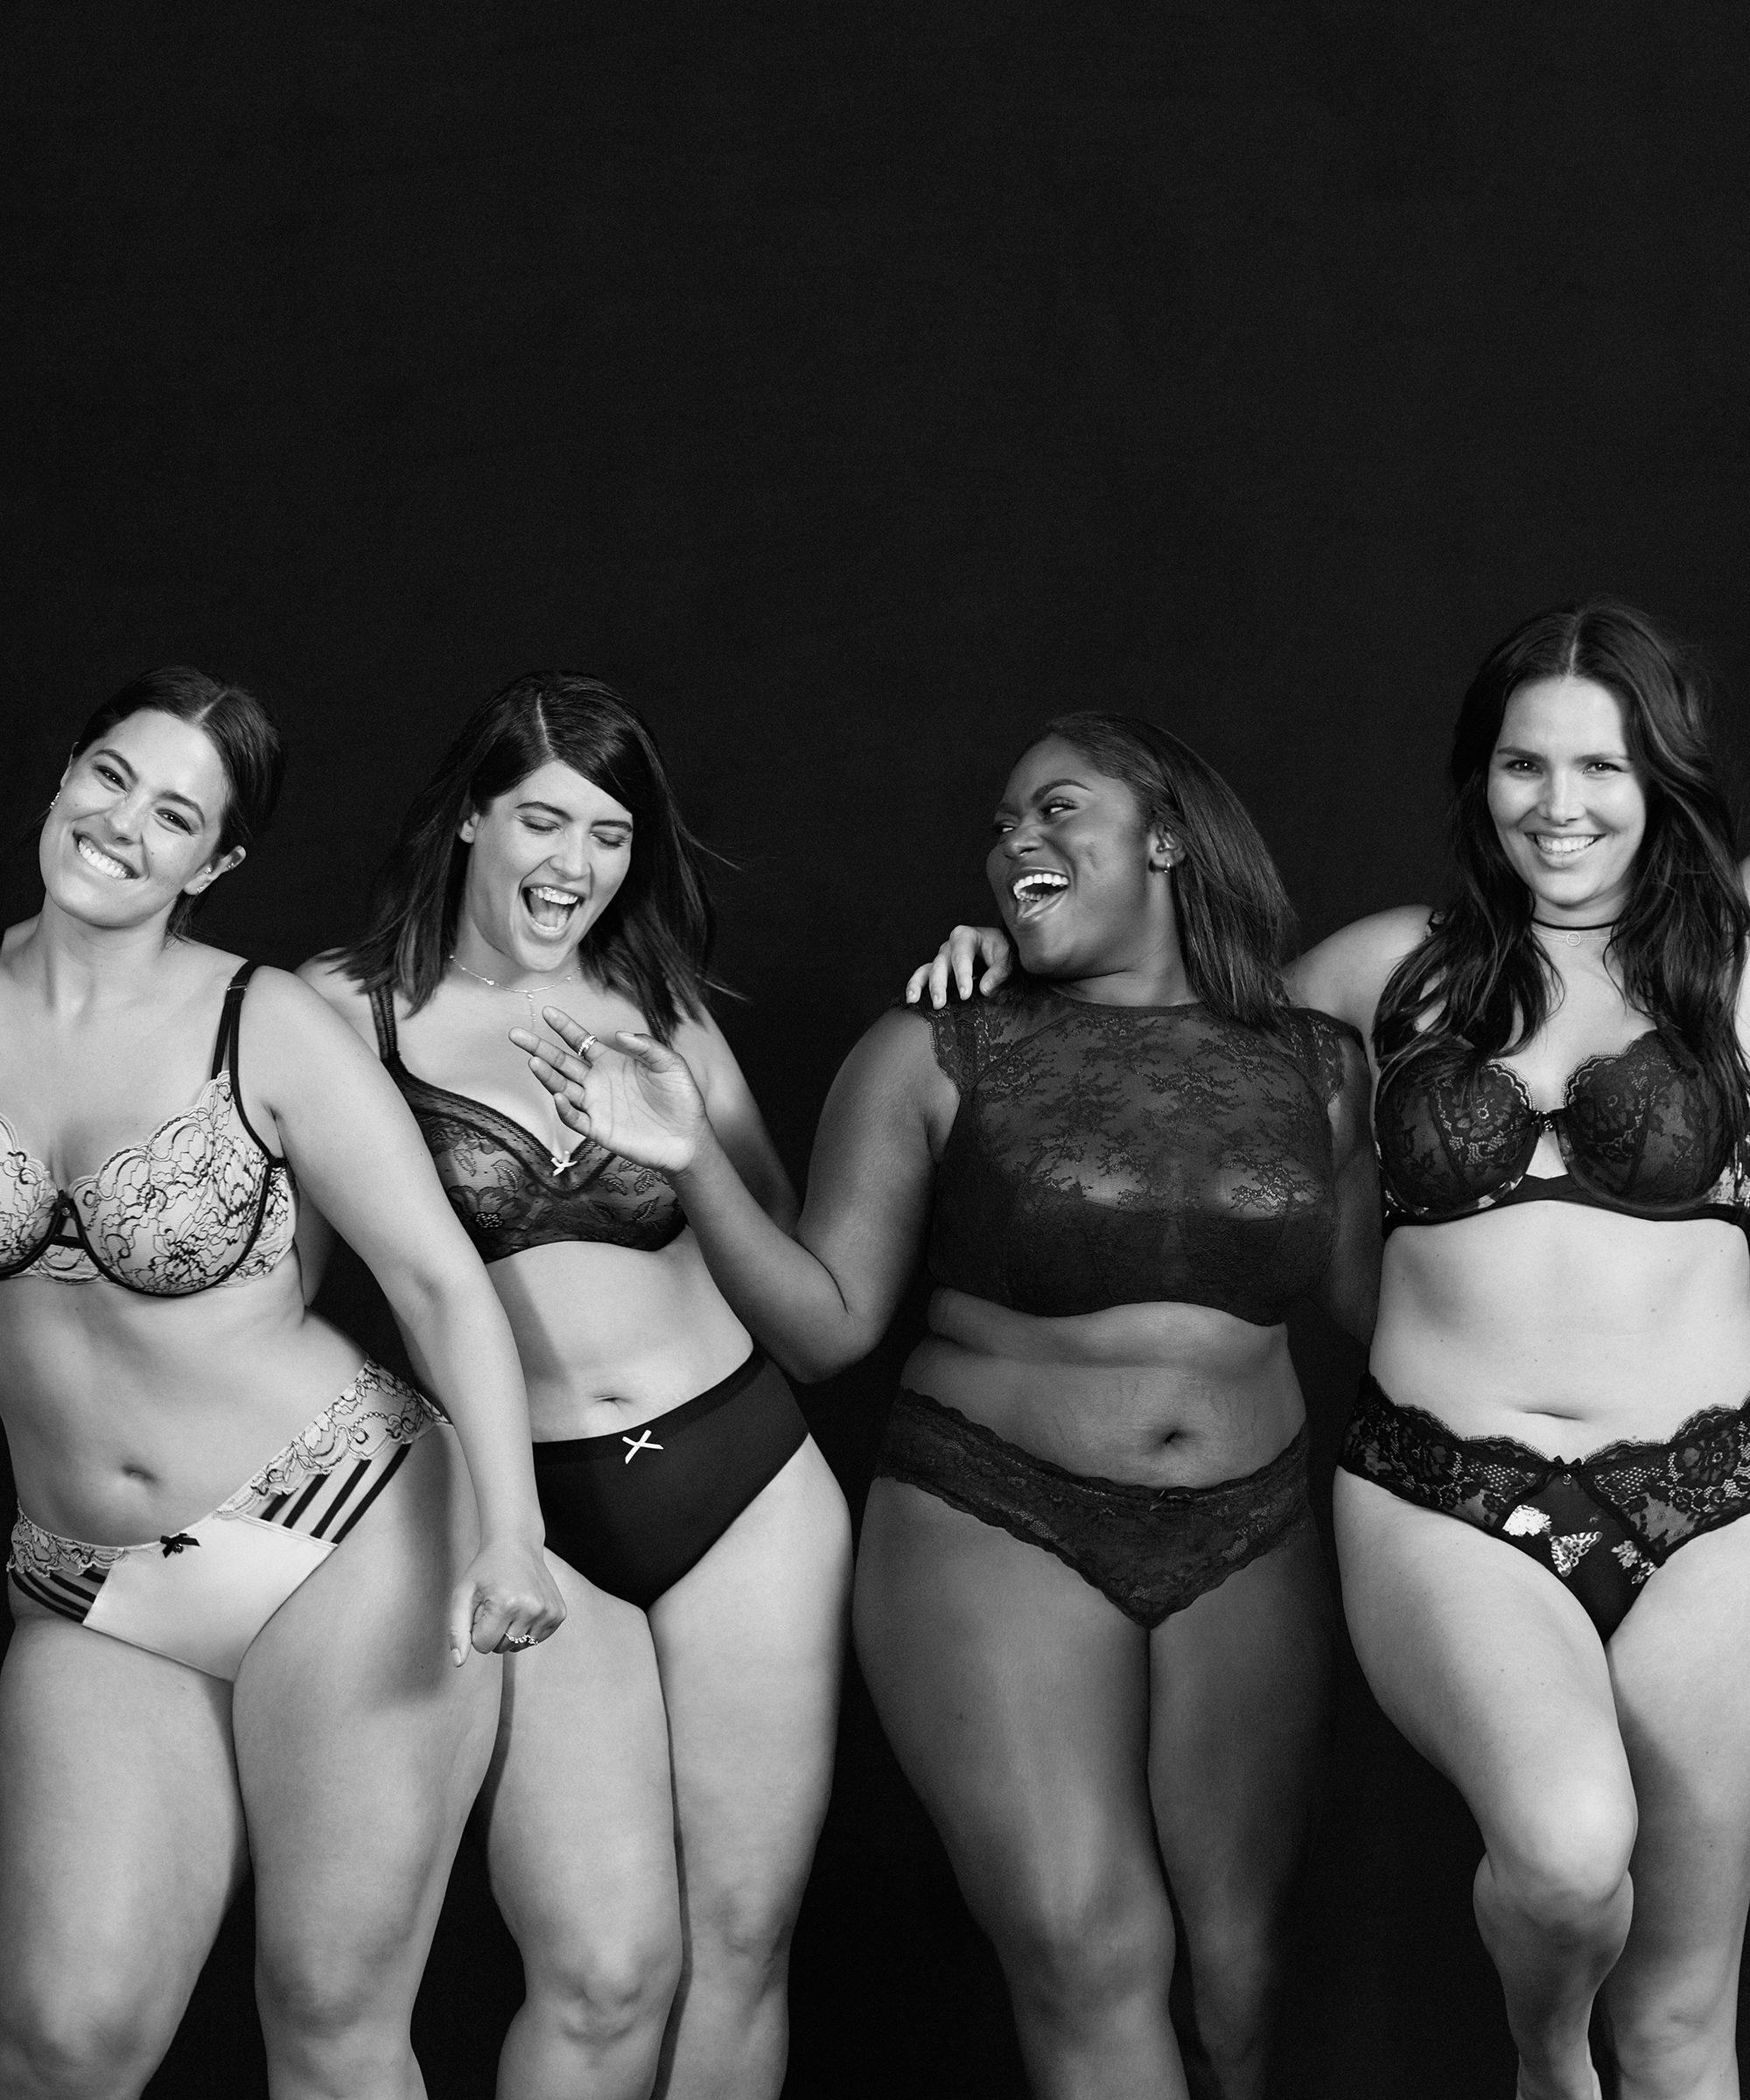 36dfe80e16658 Is This Lane Bryant Commercial Aimed At Victoria's Secret?